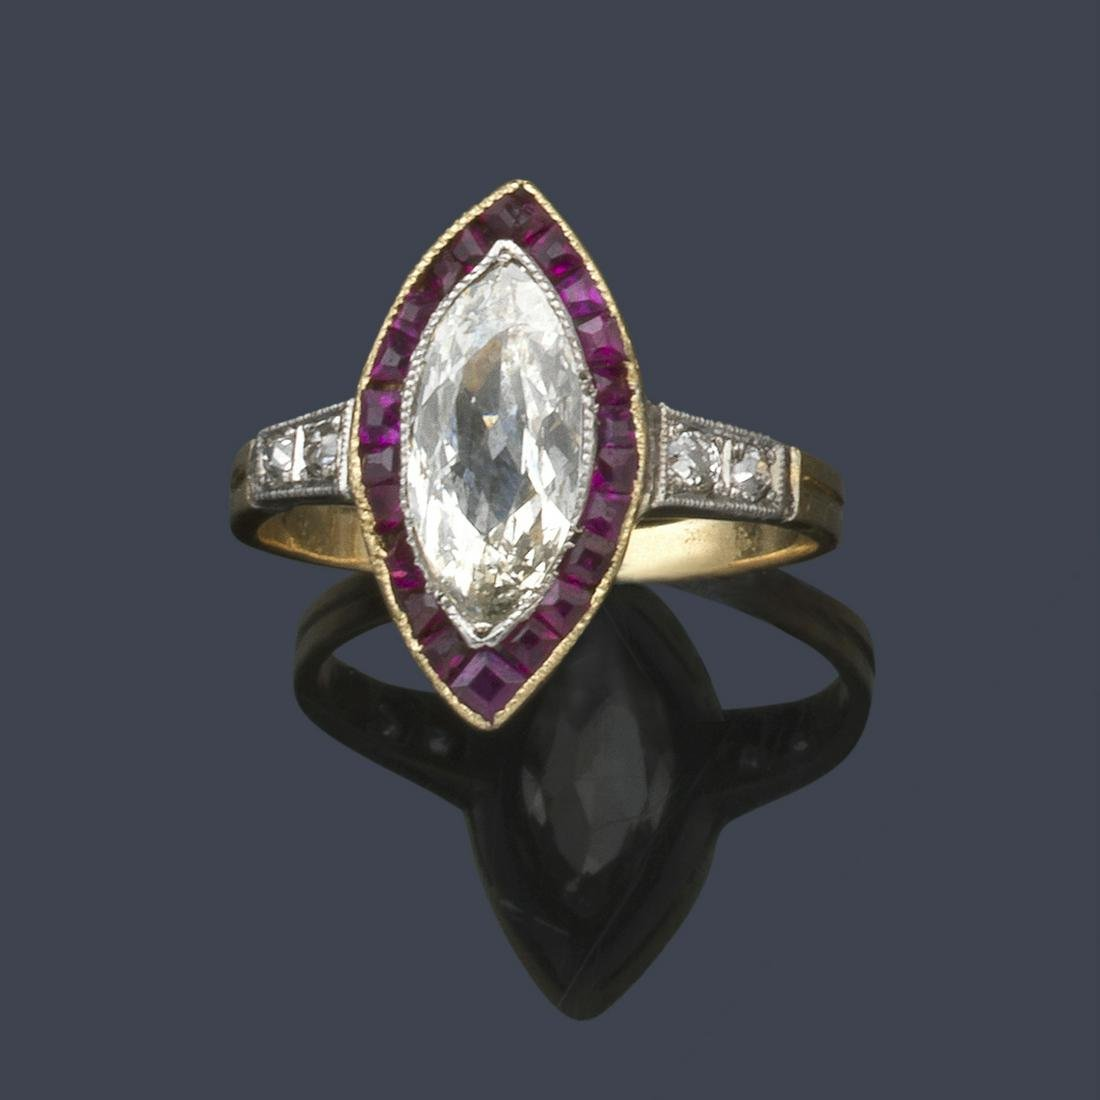 Ring with marquise cut diamond of approx. 0.75 ct with